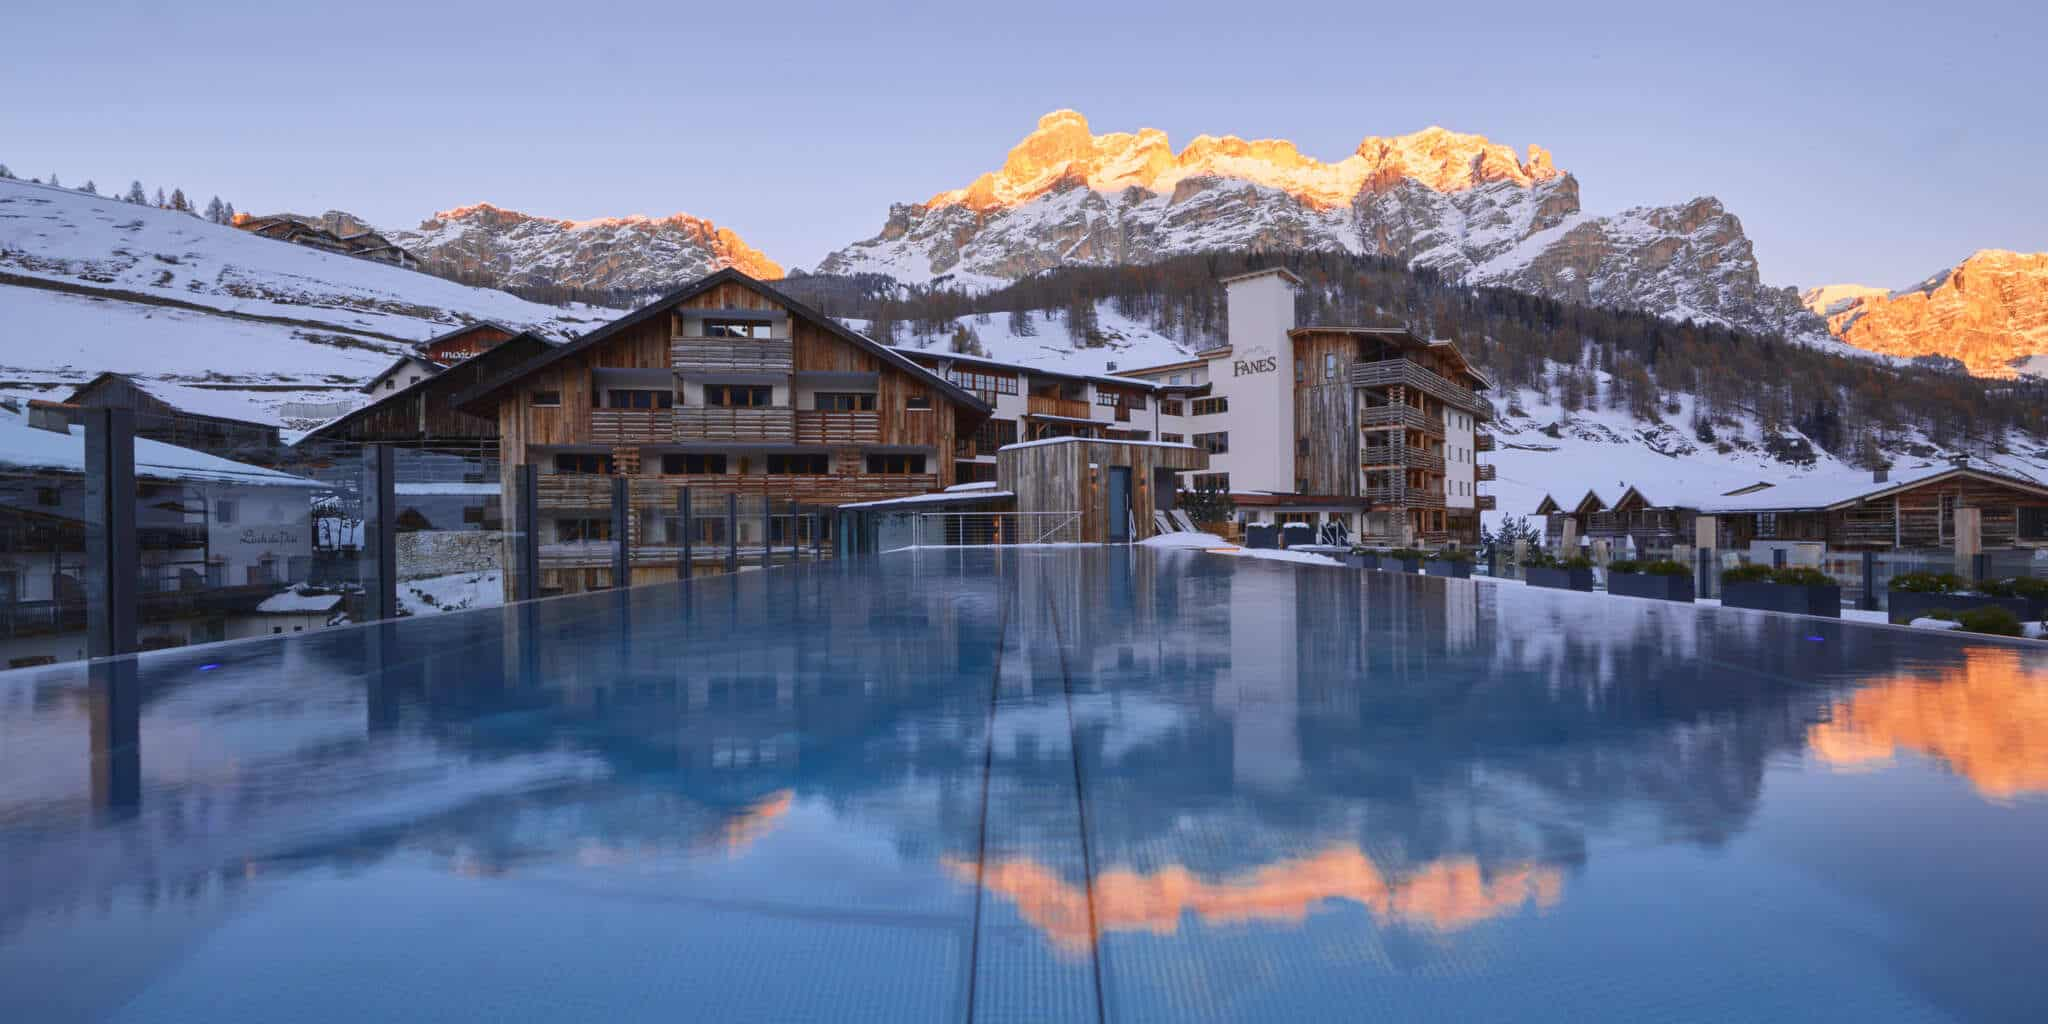 Fanes Dolomiti Pool with the San Cassiano mountains in the background